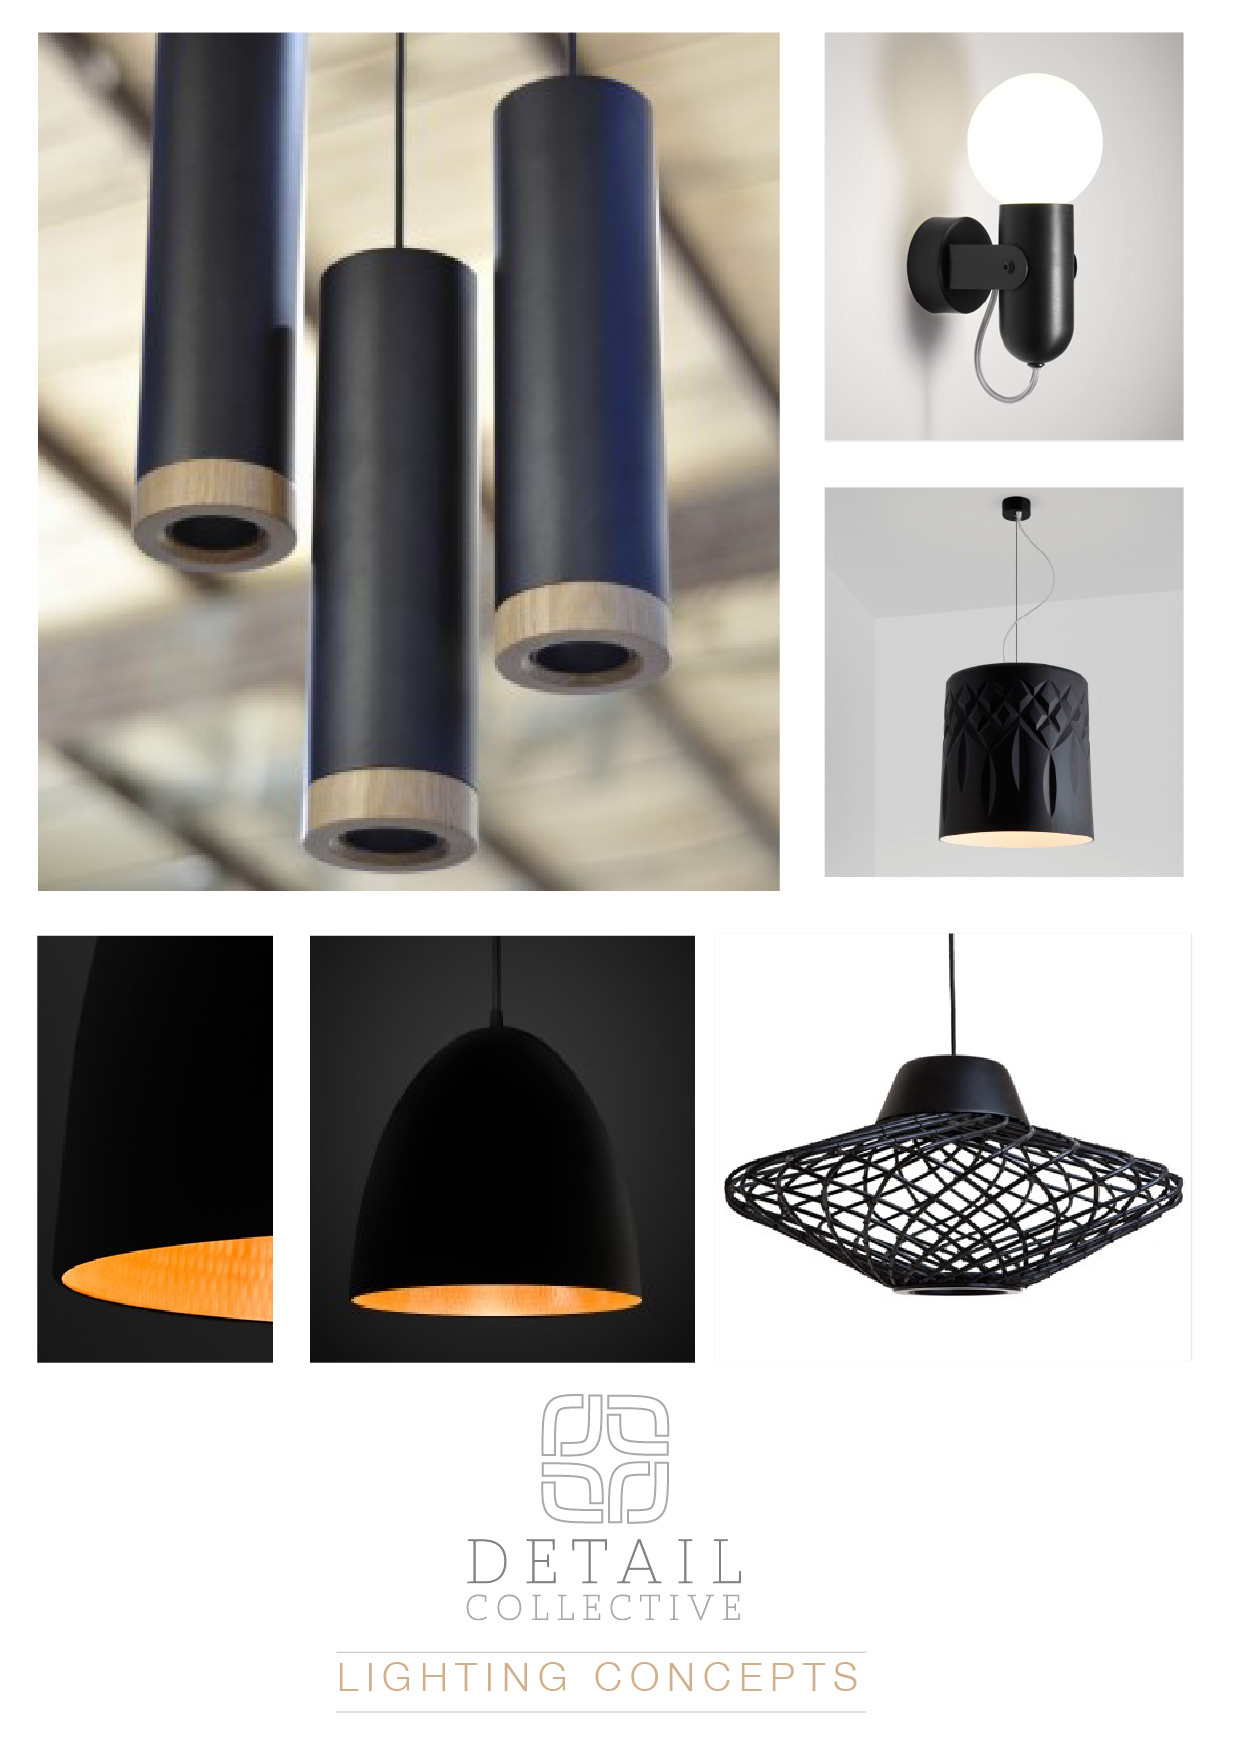 KIRKBRIDE_LIGHTING_CONCEPTS1.jpg